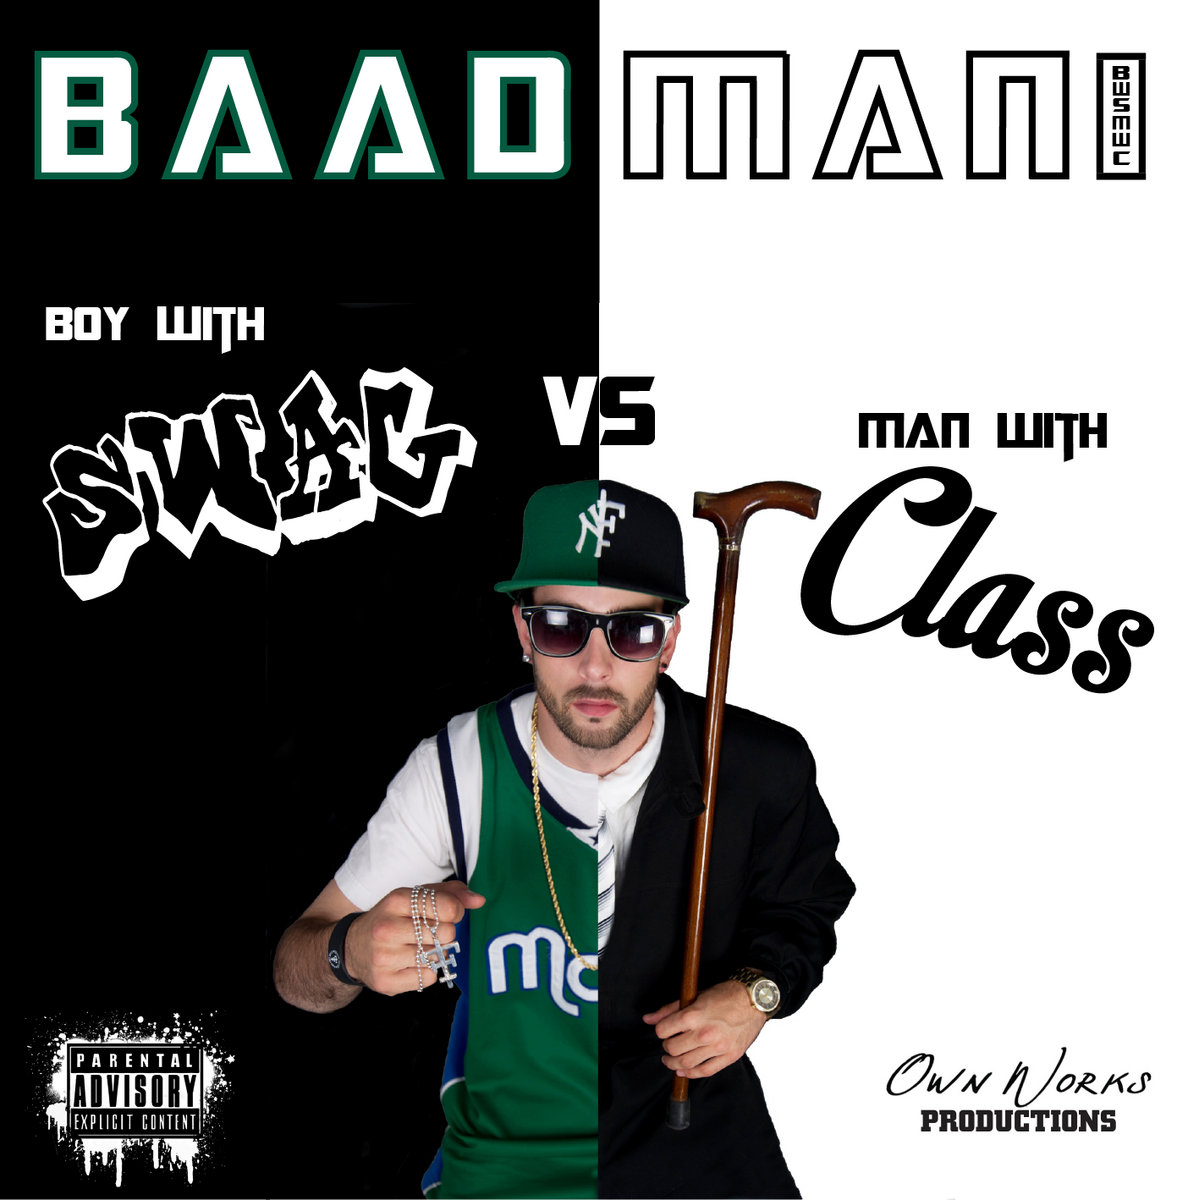 Boy With Swag, Man With Class | Baadman*